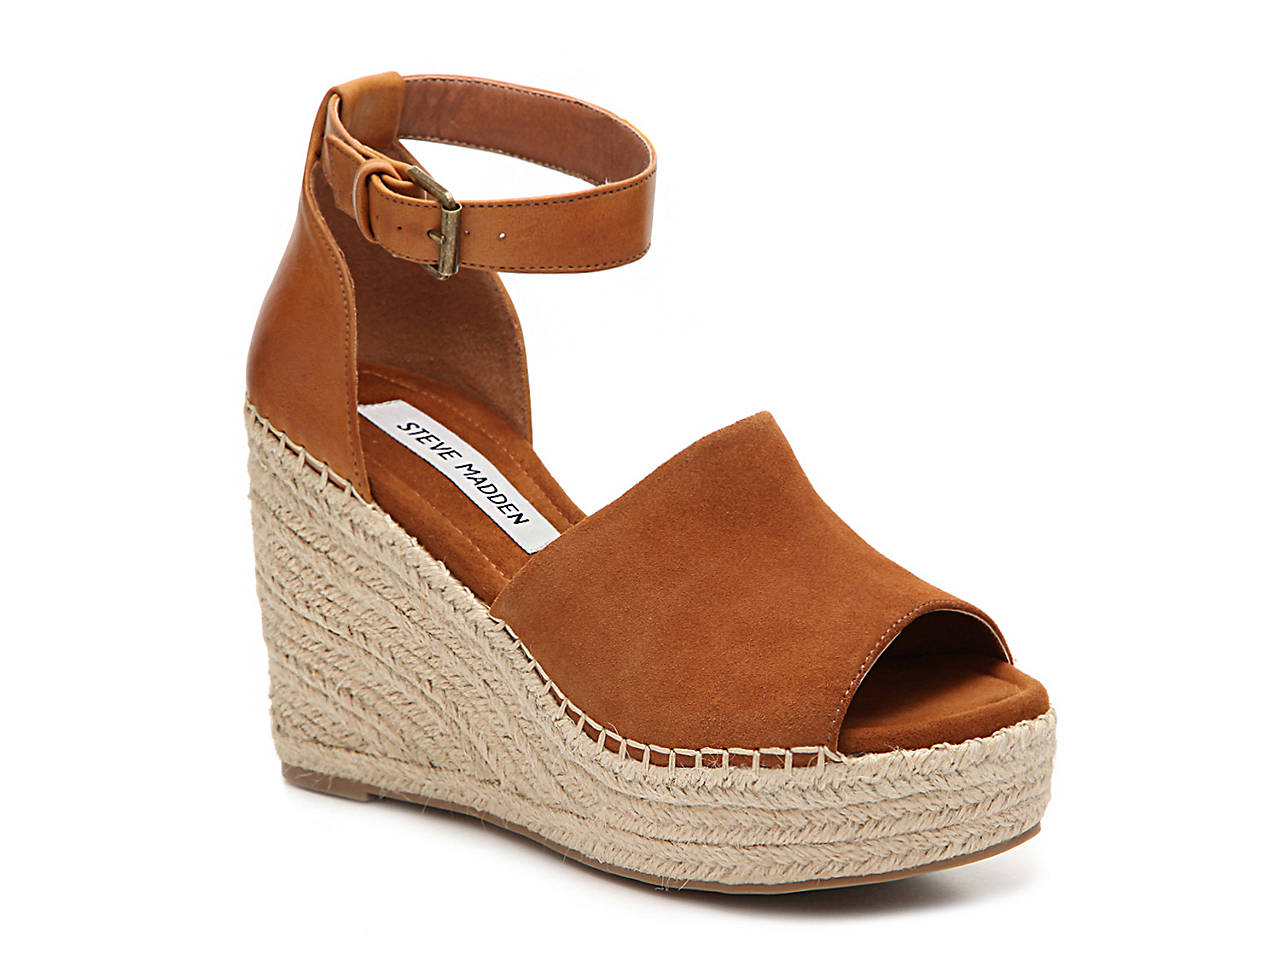 7130e49e415 Steve Madden Jaylen Wedge Sandal Women s Shoes